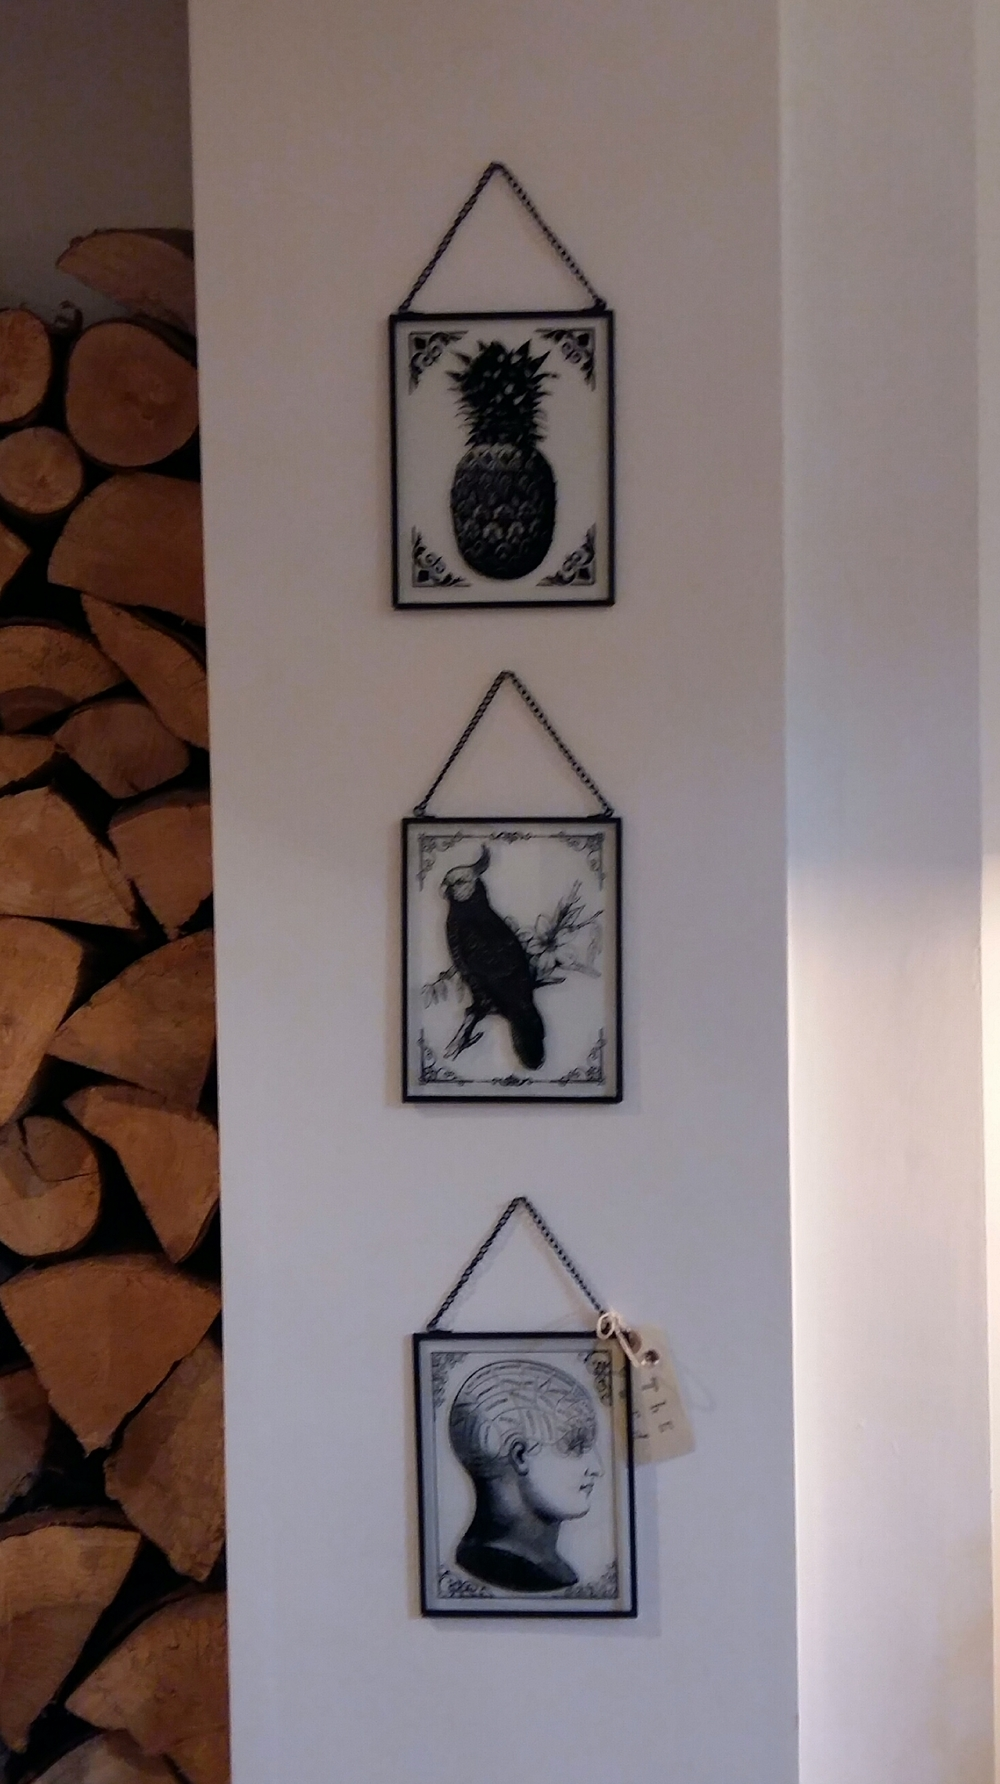 Hanging etched glass art £4 each